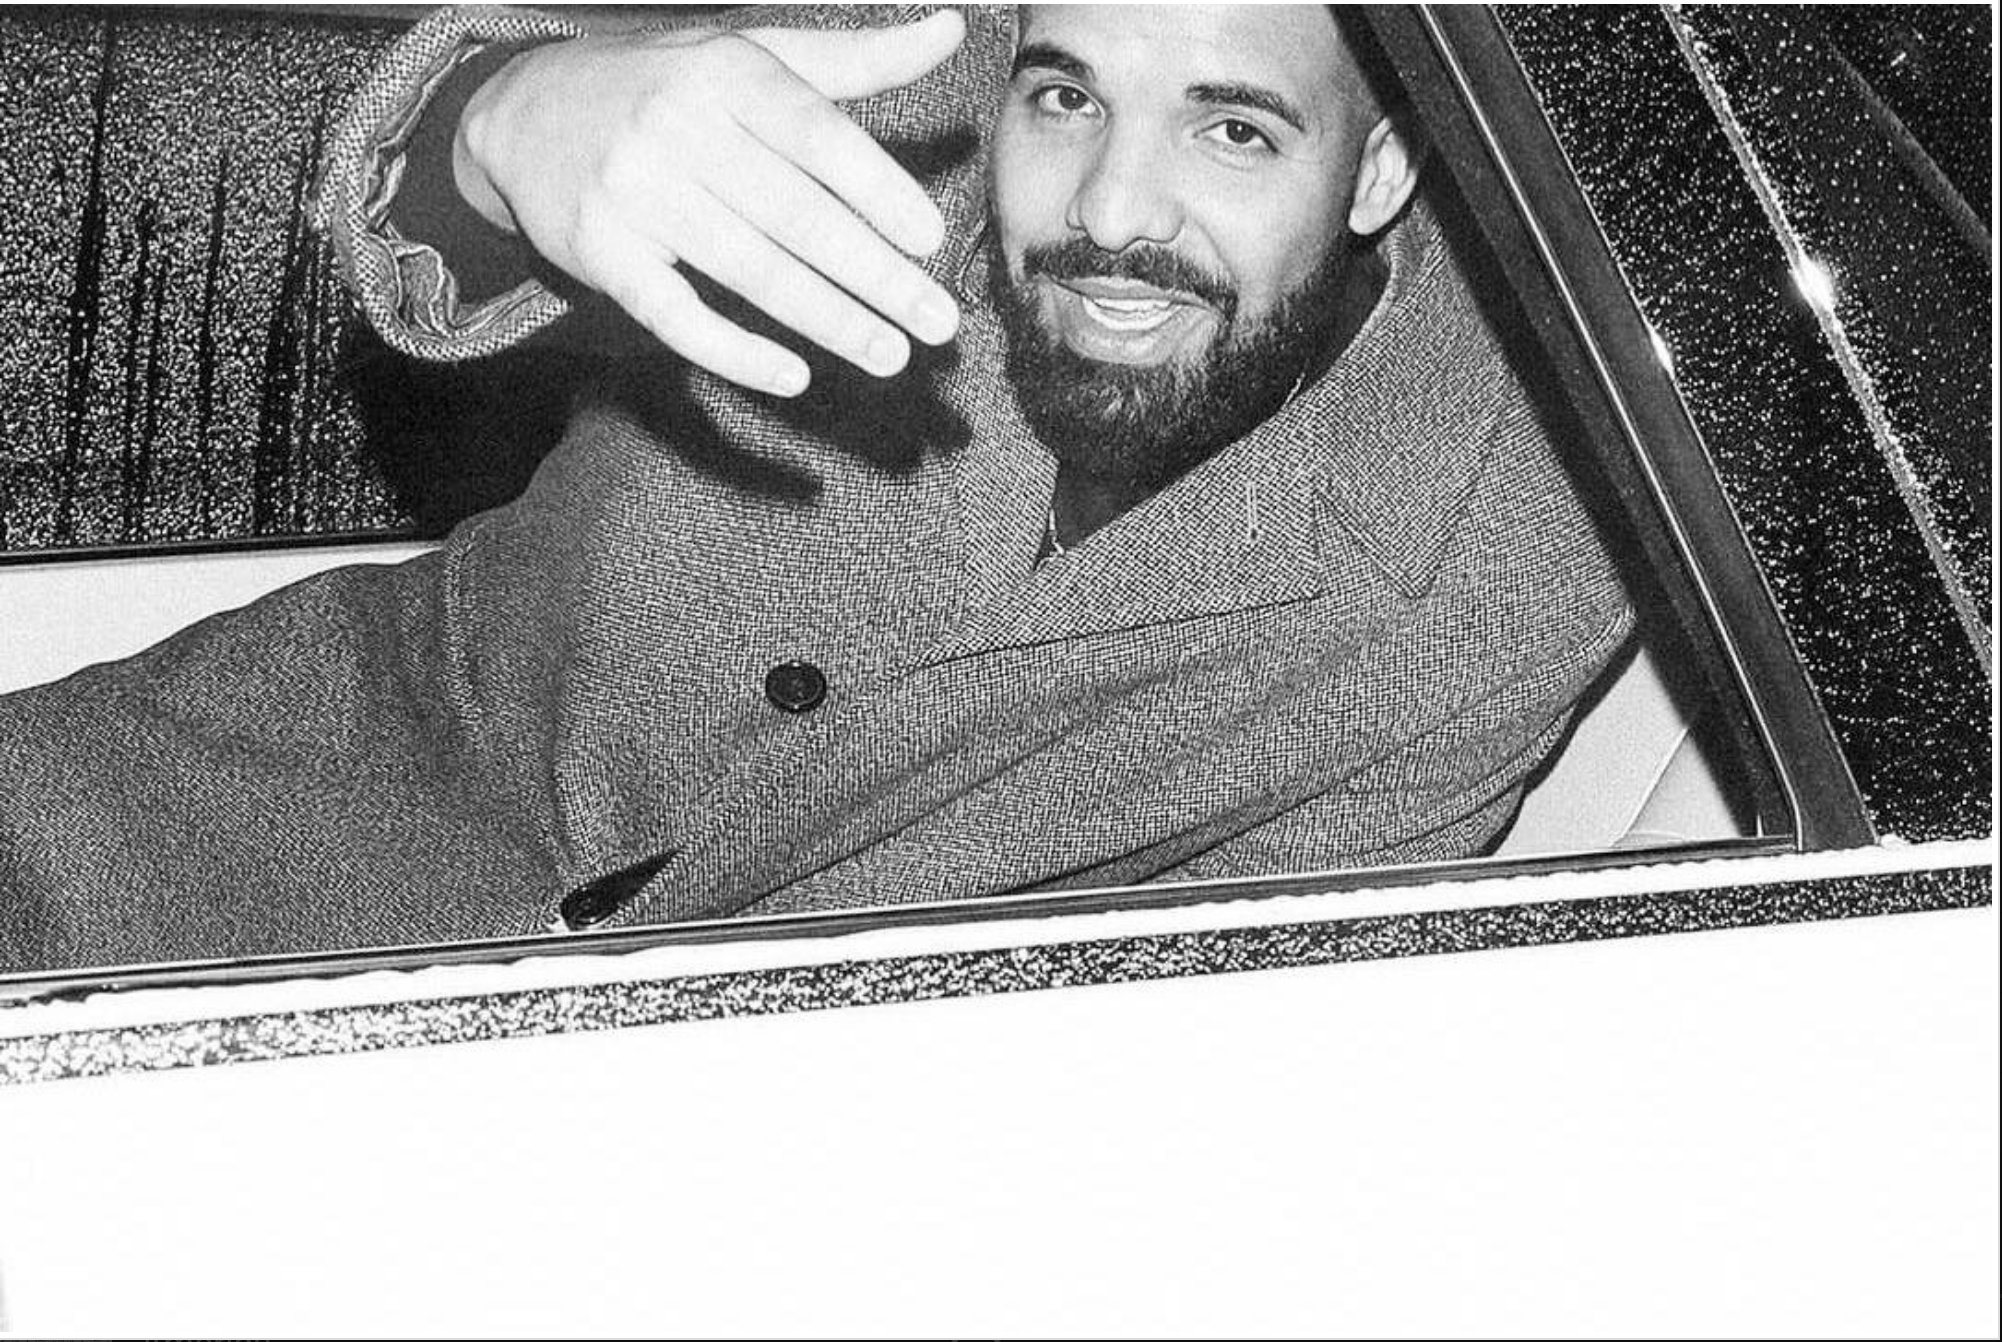 Drake 2018 Run https://t.co/VNUjGgOngb #TIDAL https://t.co/WVNQr4tUeg